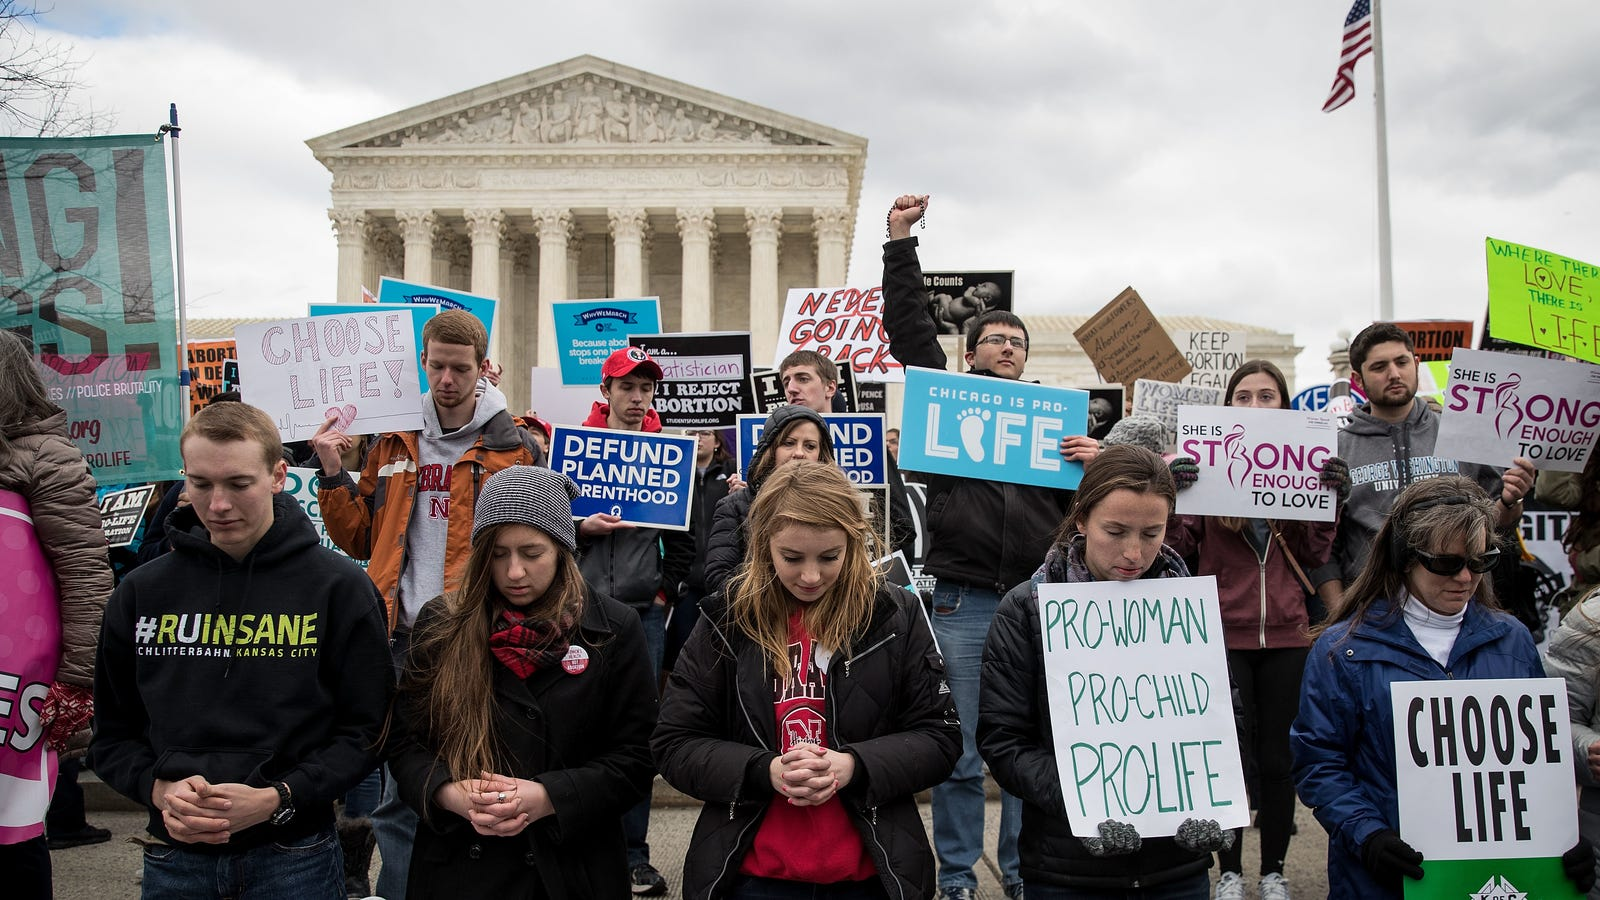 Ohio Is Bringing Back the 'Heartbeat' Bill That Effectively Criminalizes All Abortion